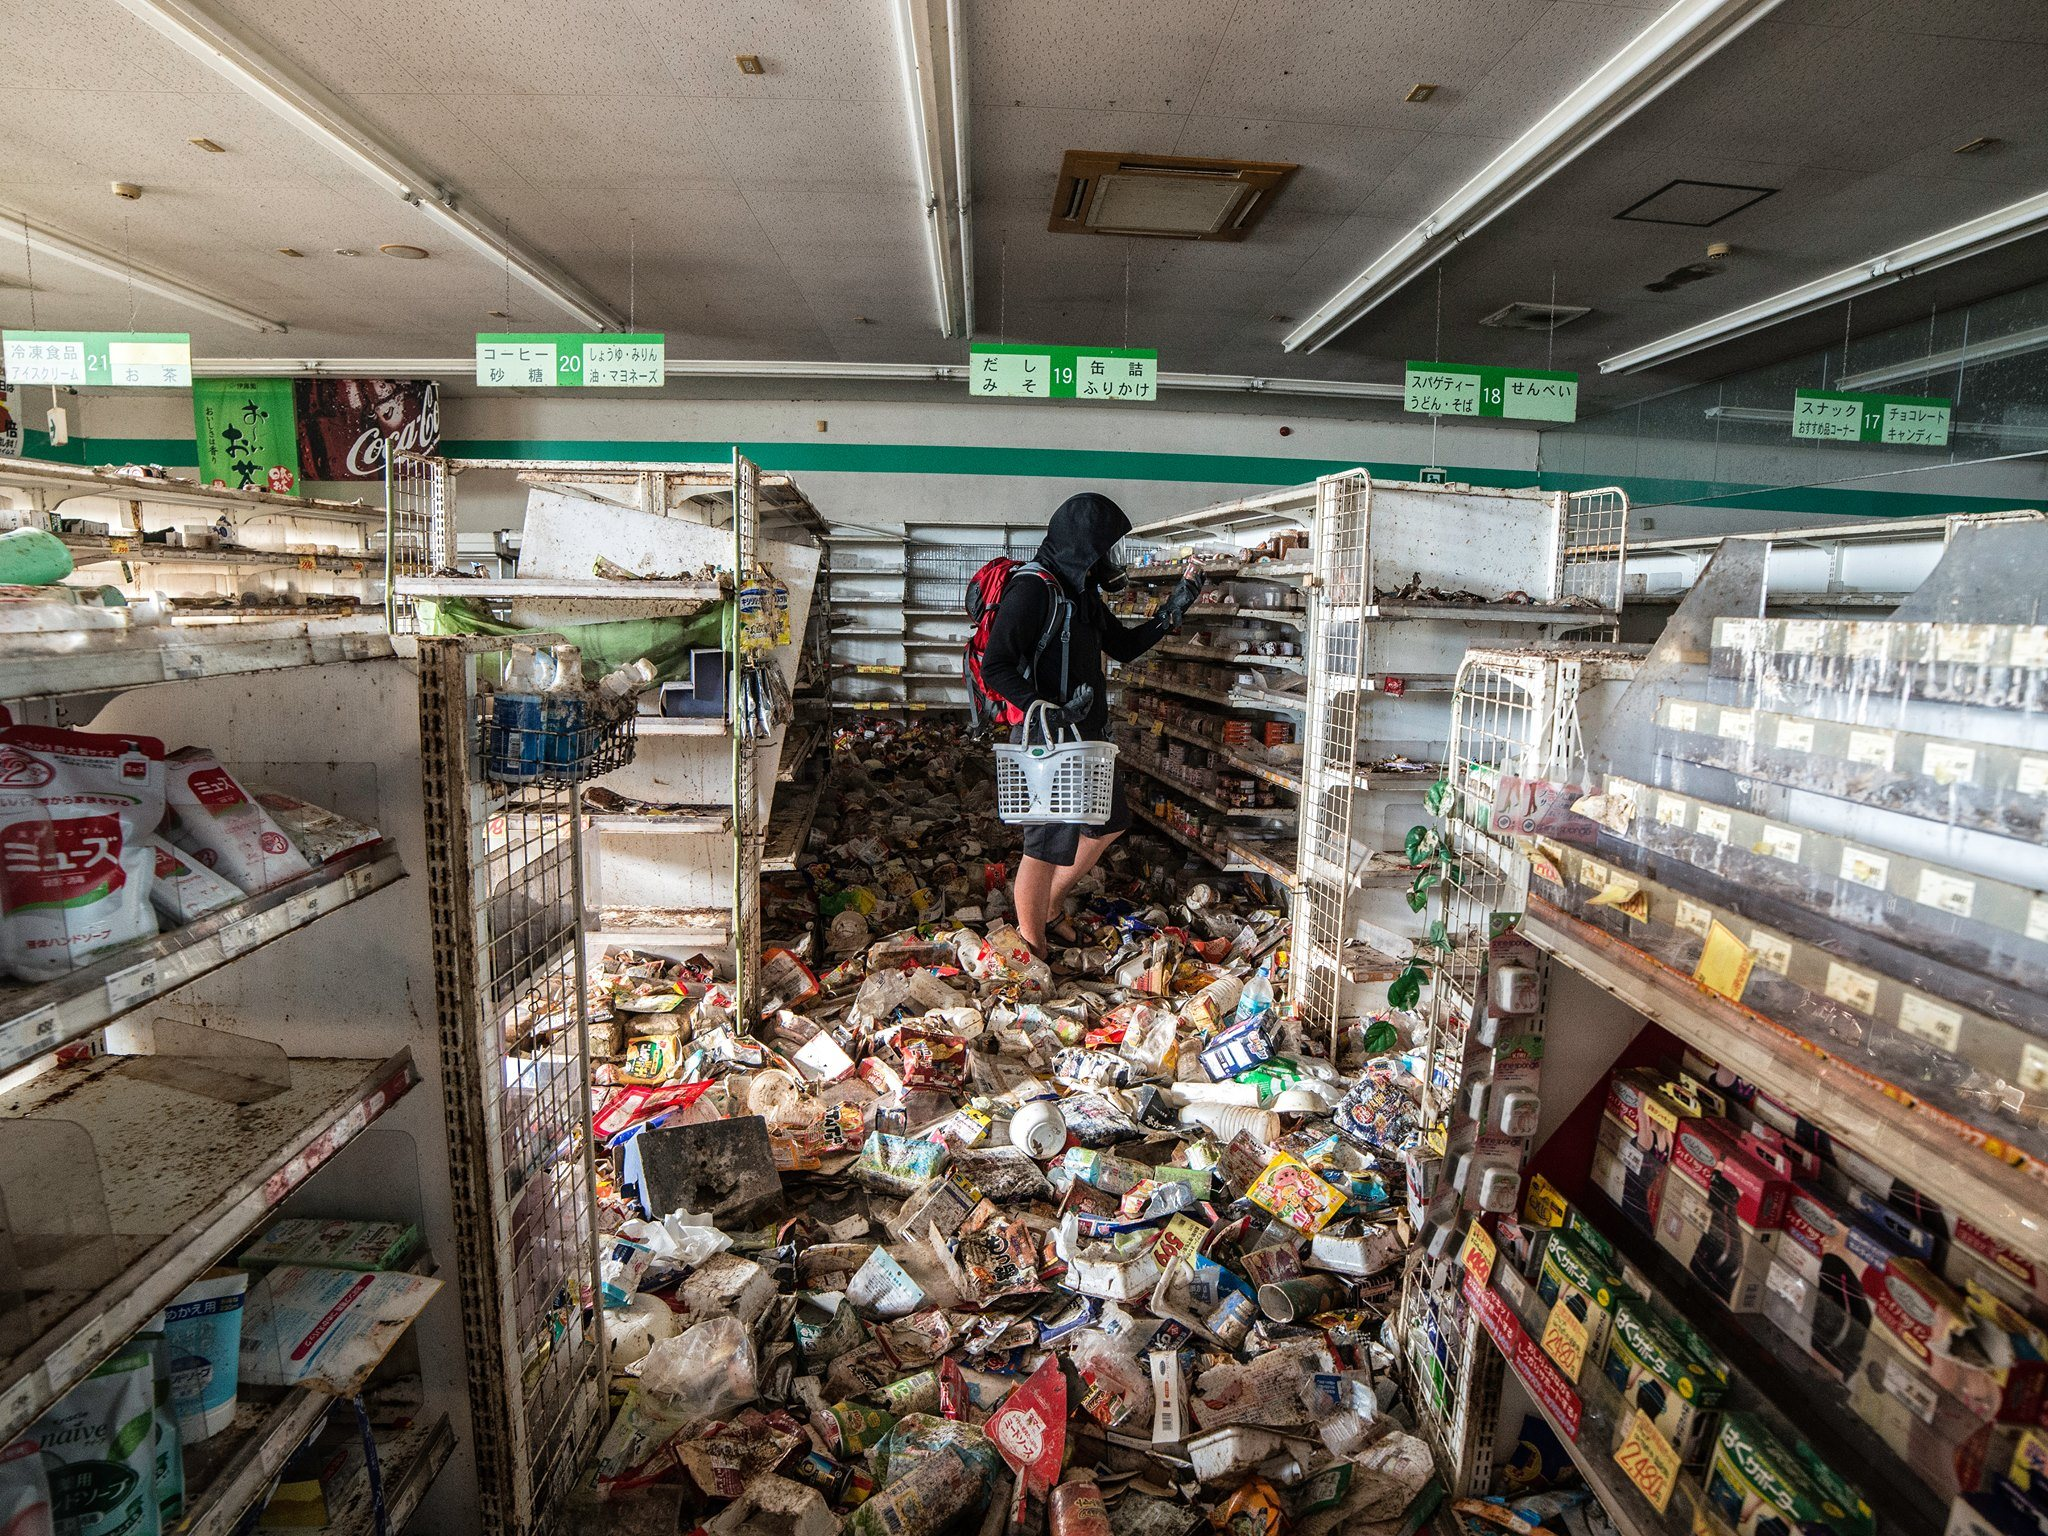 Shopping in a abandon super market .. This super market is abandon since the fukushima daichi power plant exploded back in 2011